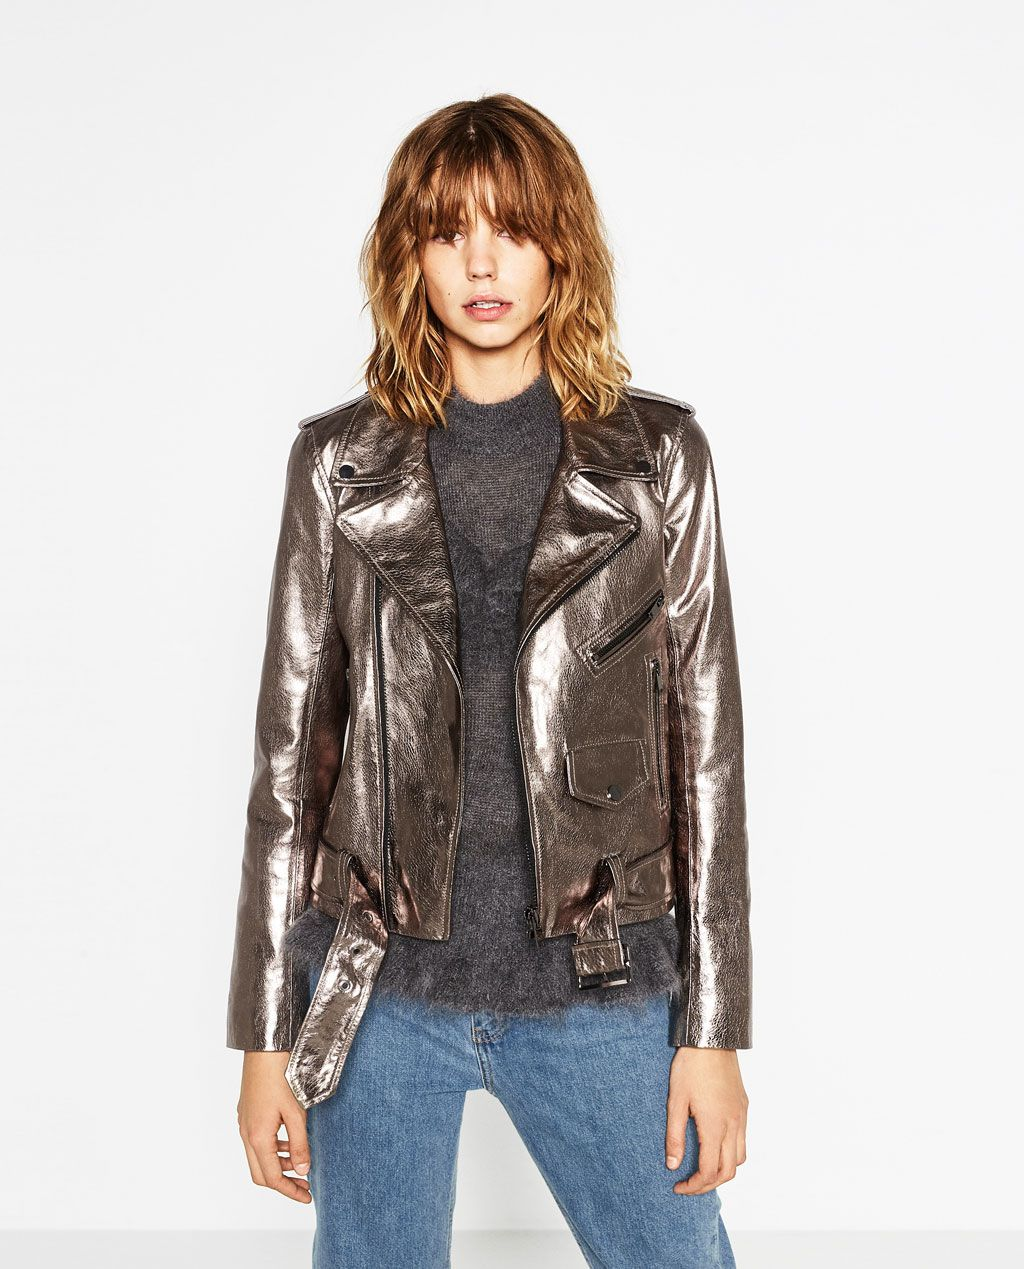 Metallic Leather Jacket New In Woman Zara United States Style